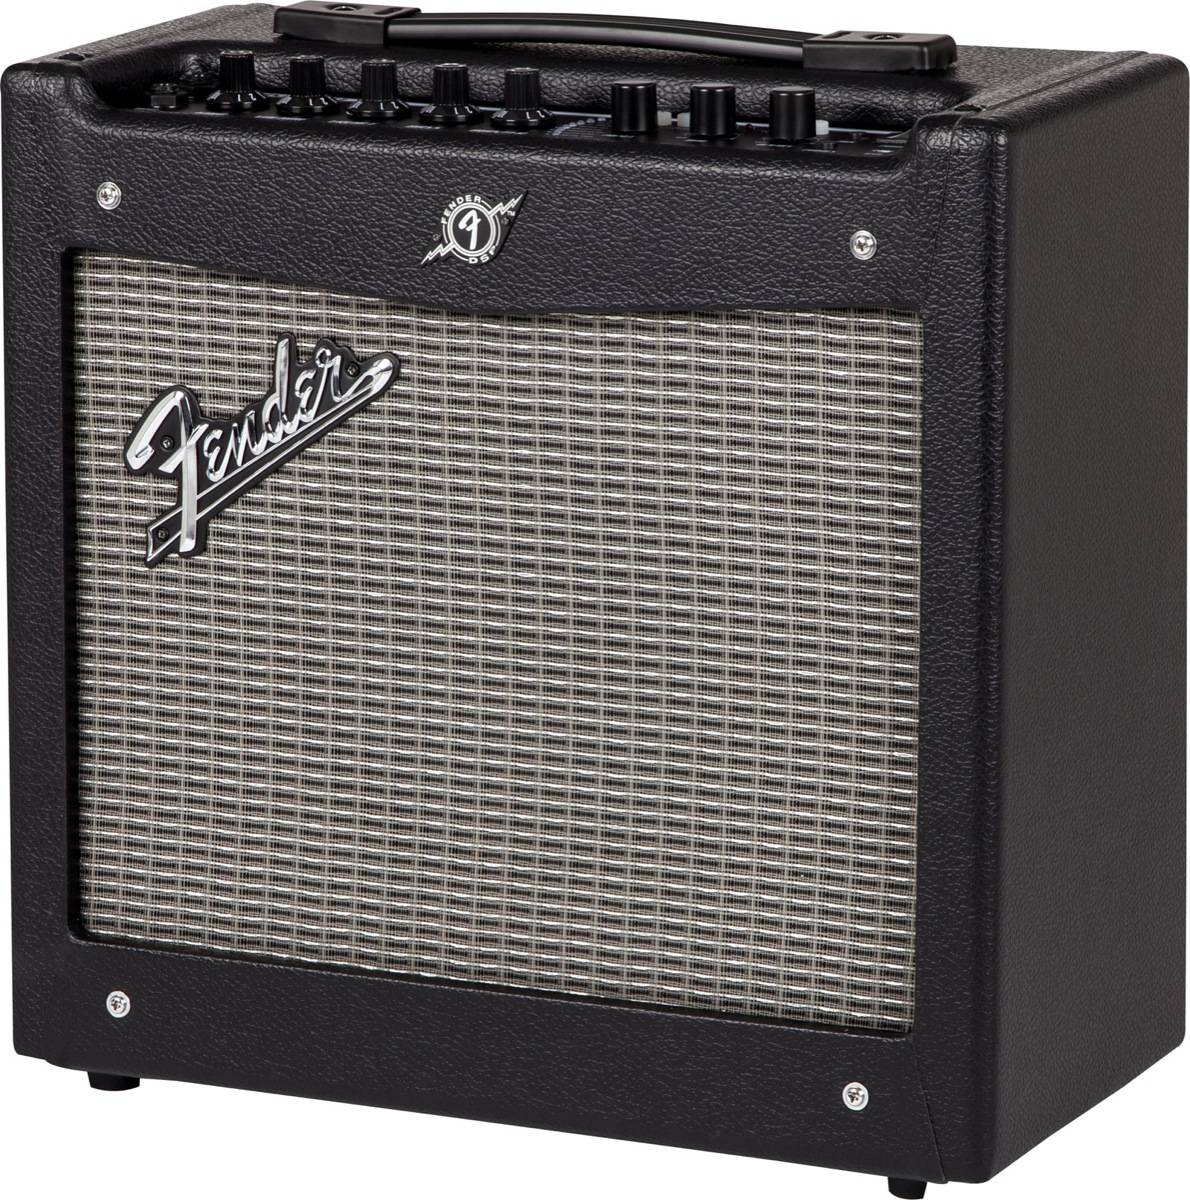 Fender Mustang I V2 20-Watt review